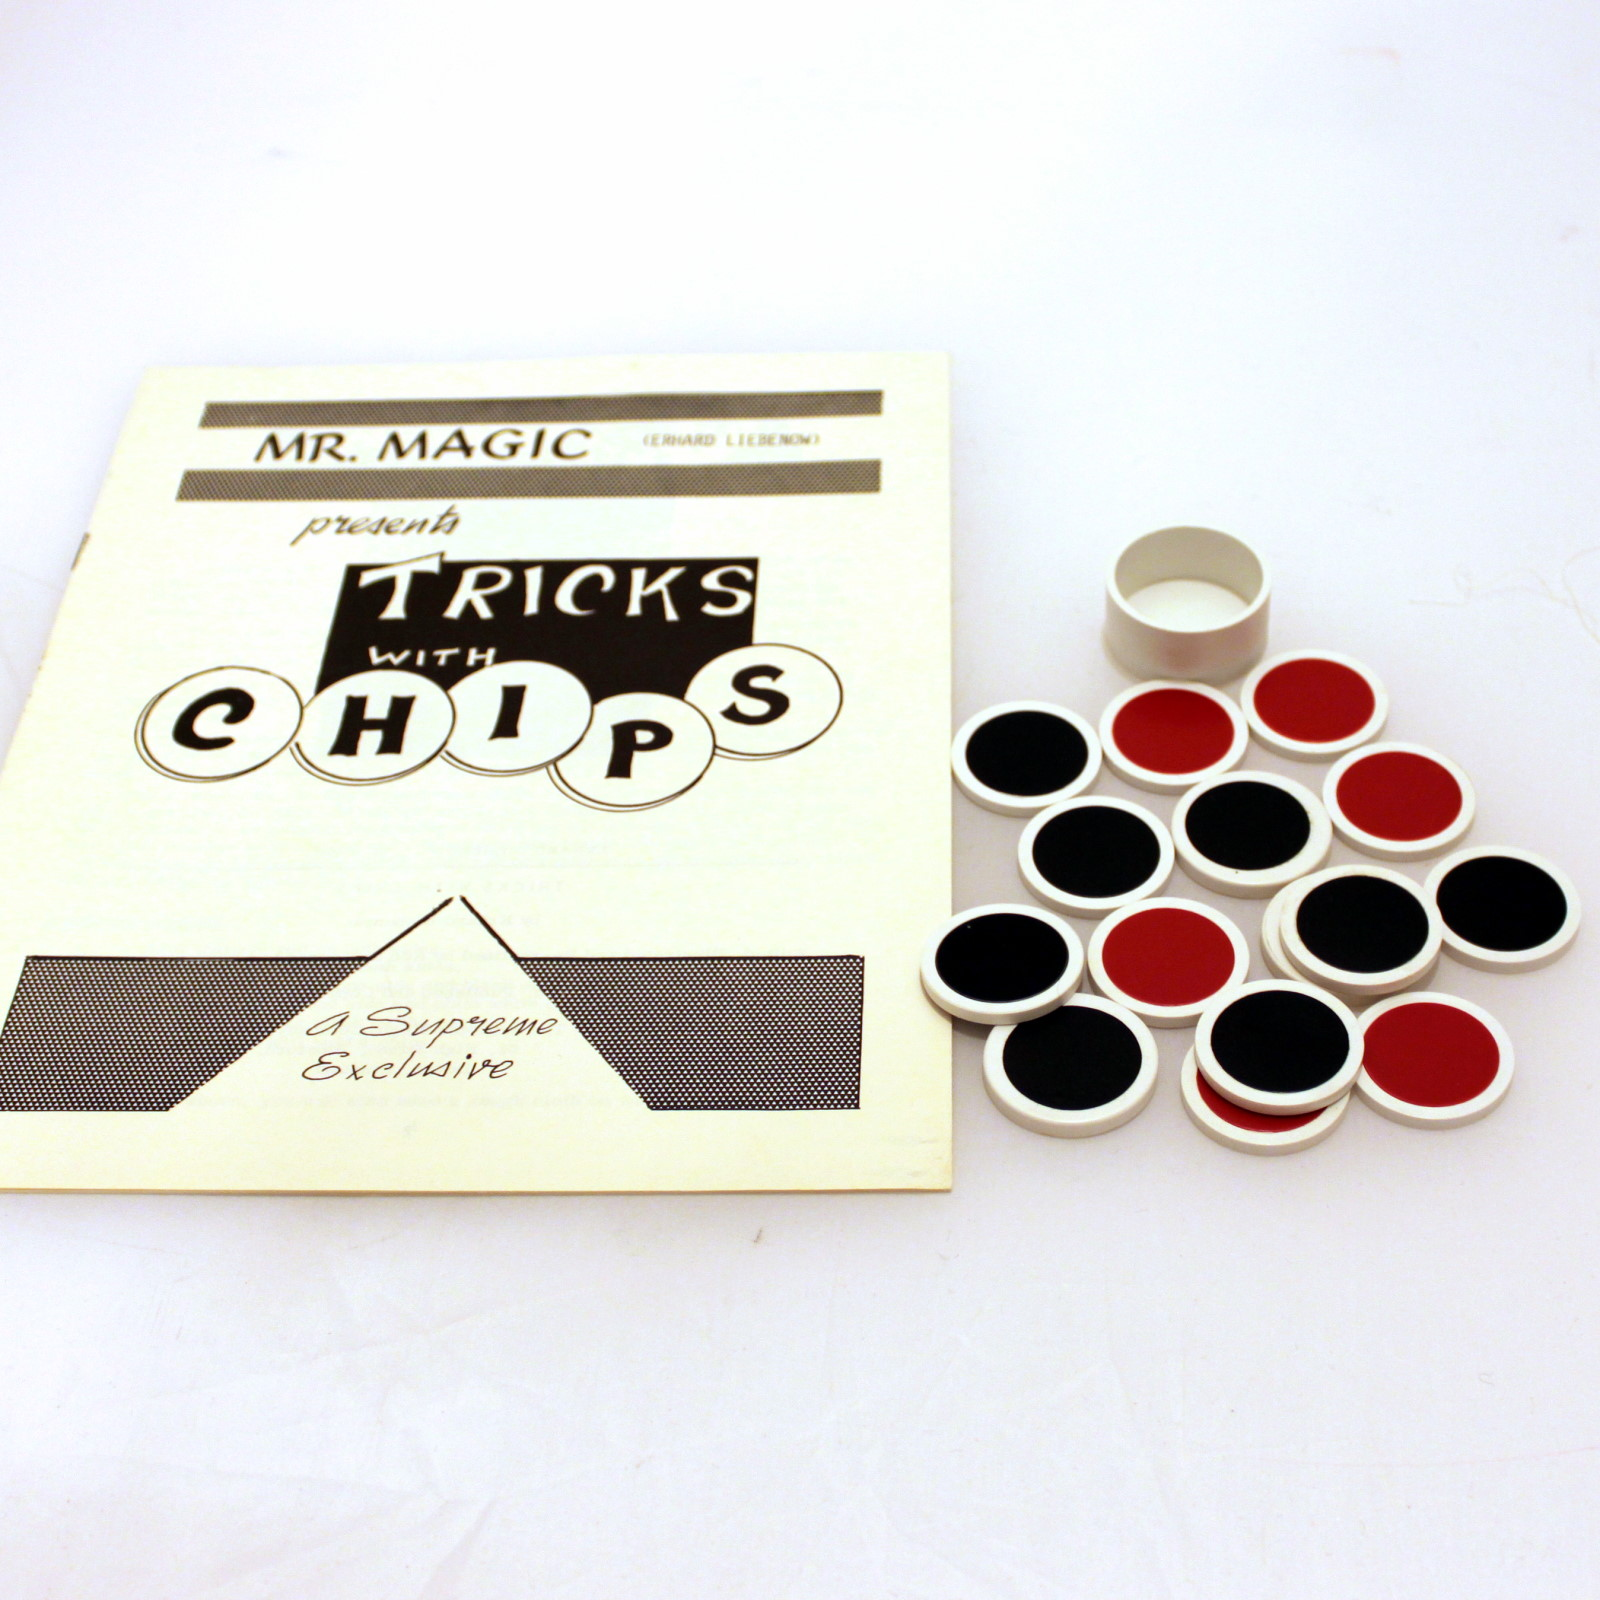 Tricks With Chips by Erhardt Liebenow